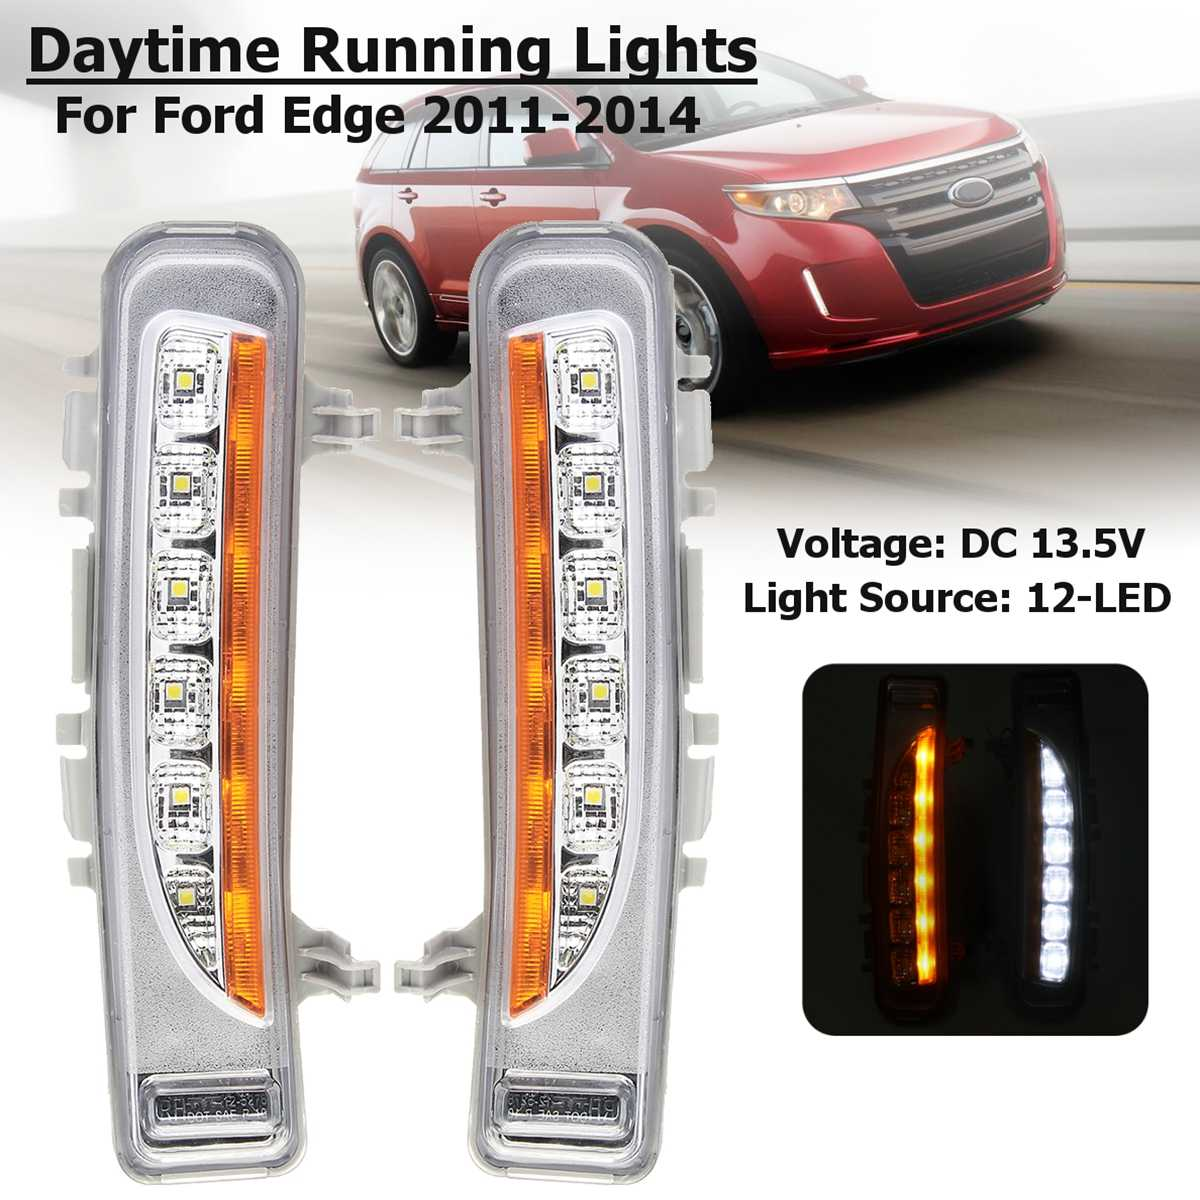 1 Pair Yellow And White 12-led Drl Daytime Running Turning Signal Flashing Lights Signal Waterproof For Ford Edge 2011 12 13 14